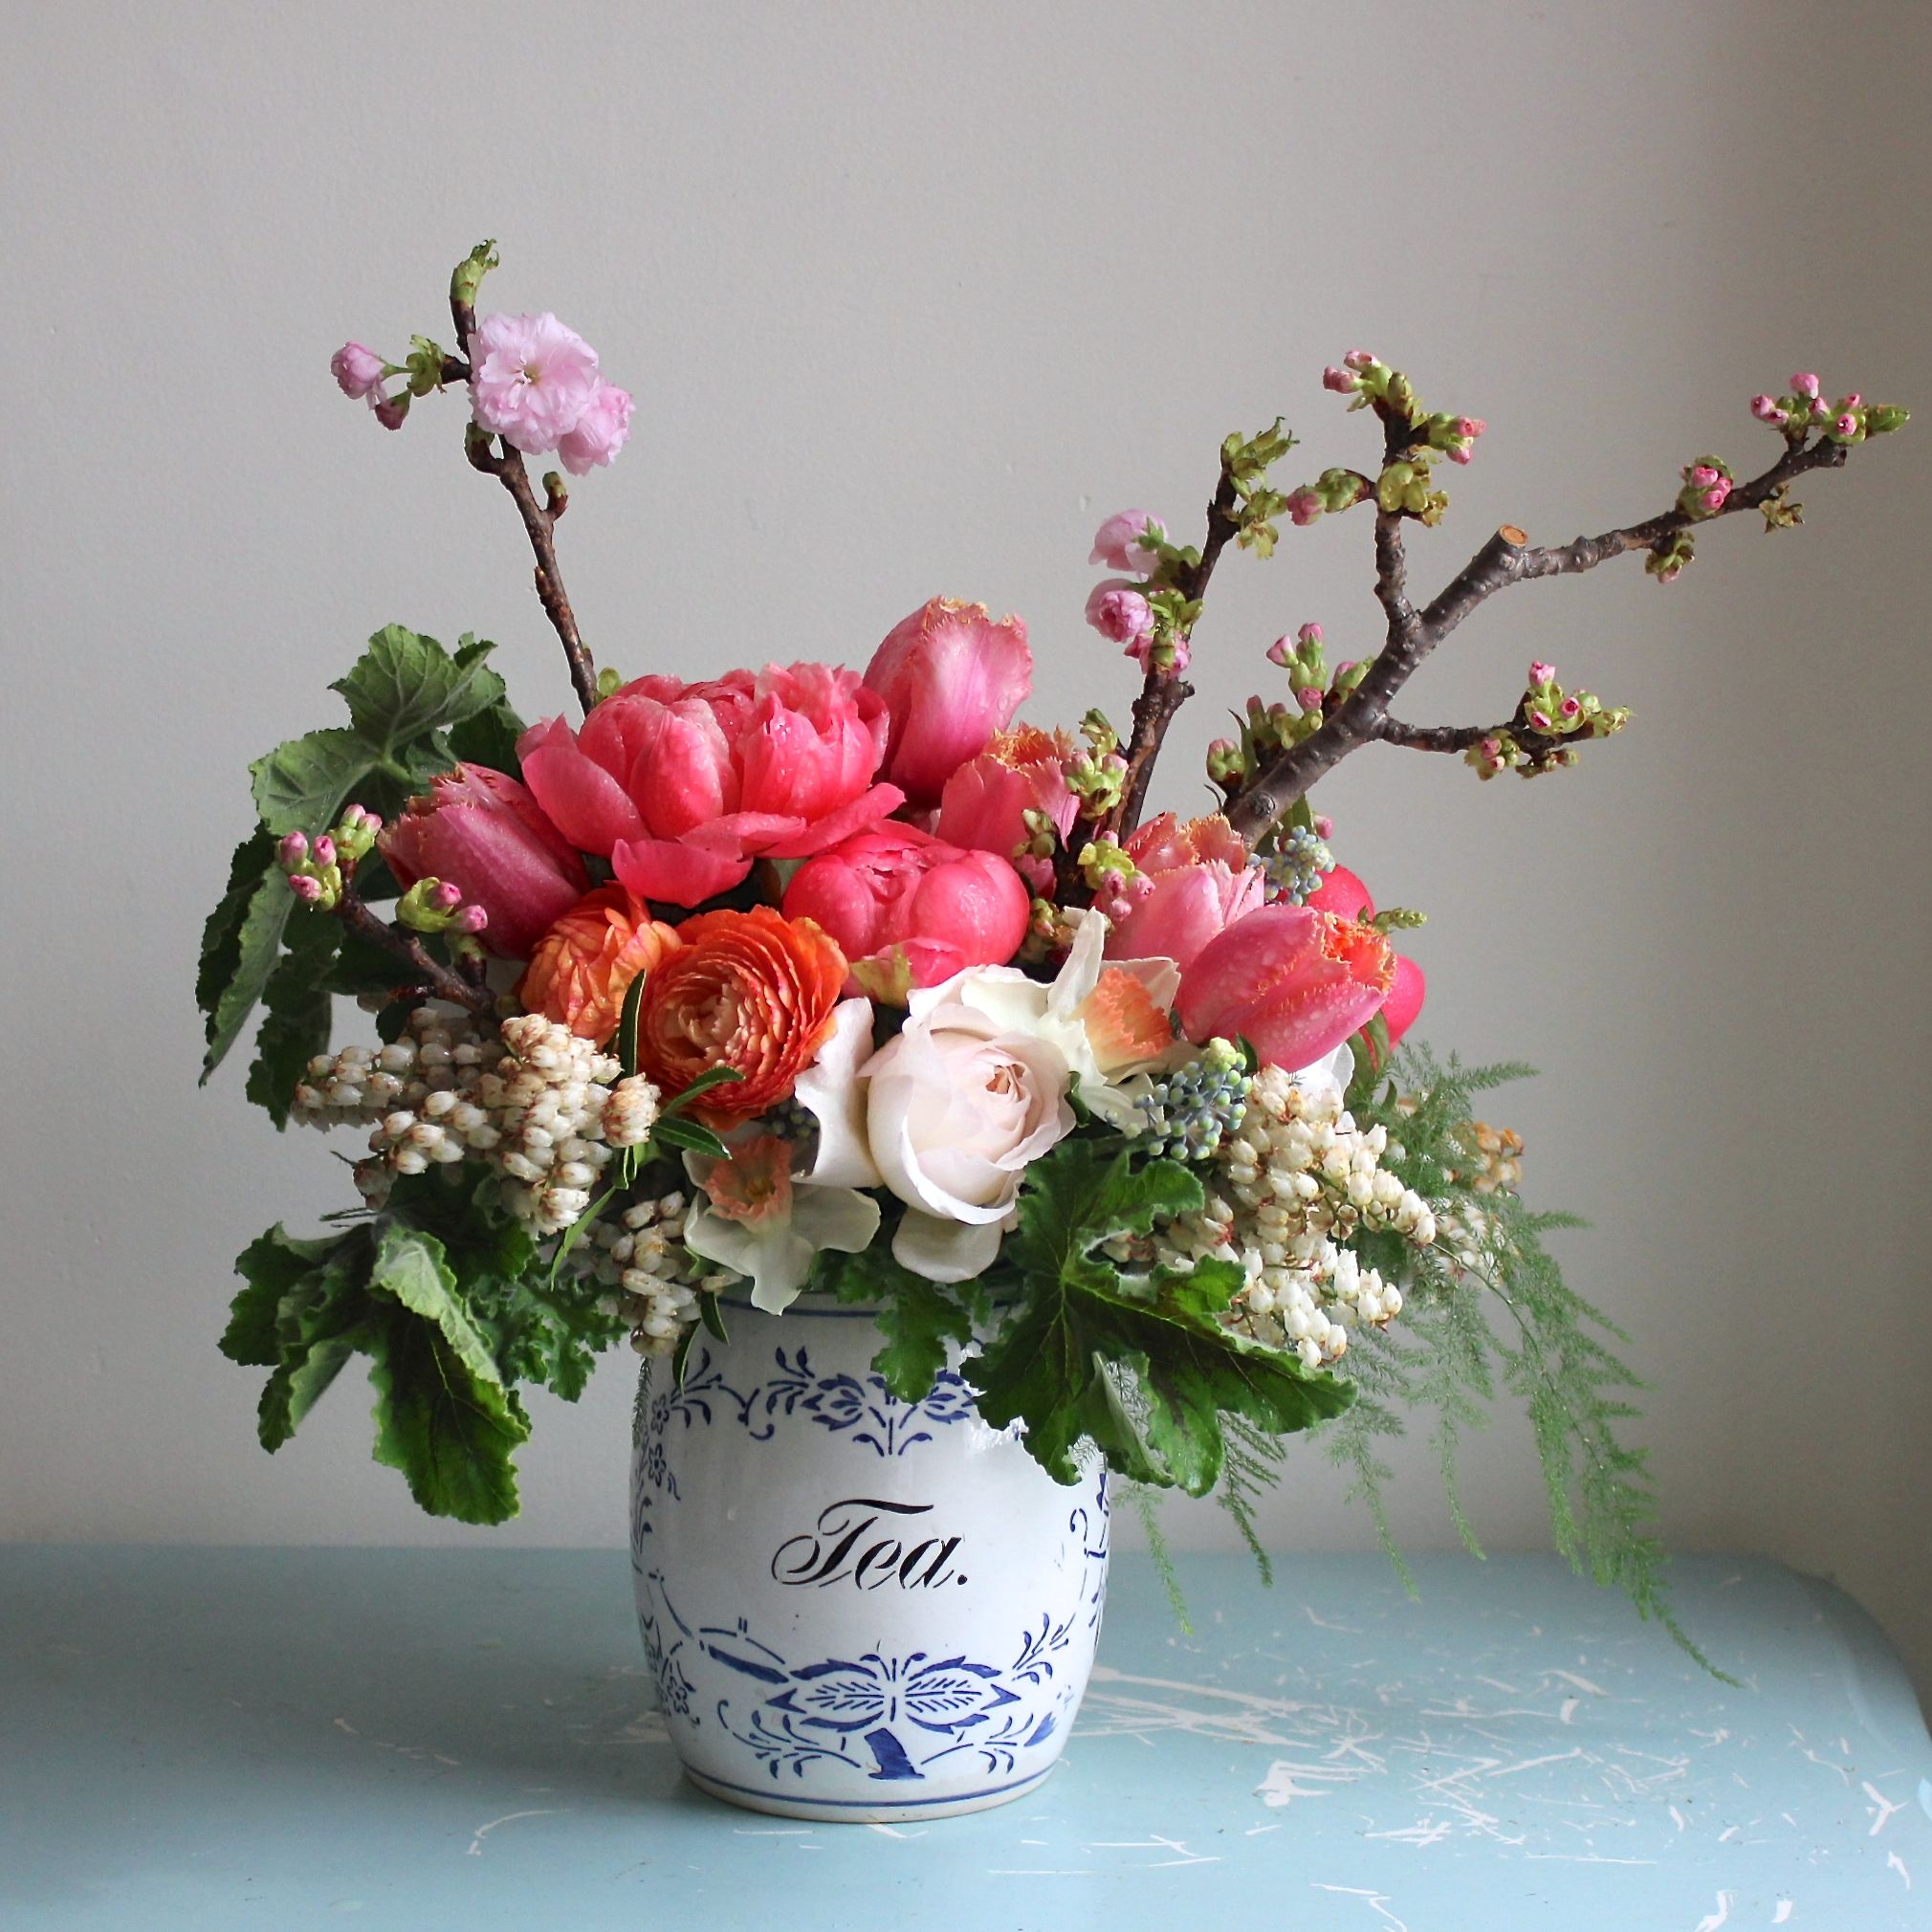 Spring Floral Arrangement By Sachi Rose Includes Cherry Blossom Branches Coral Peonies Cream